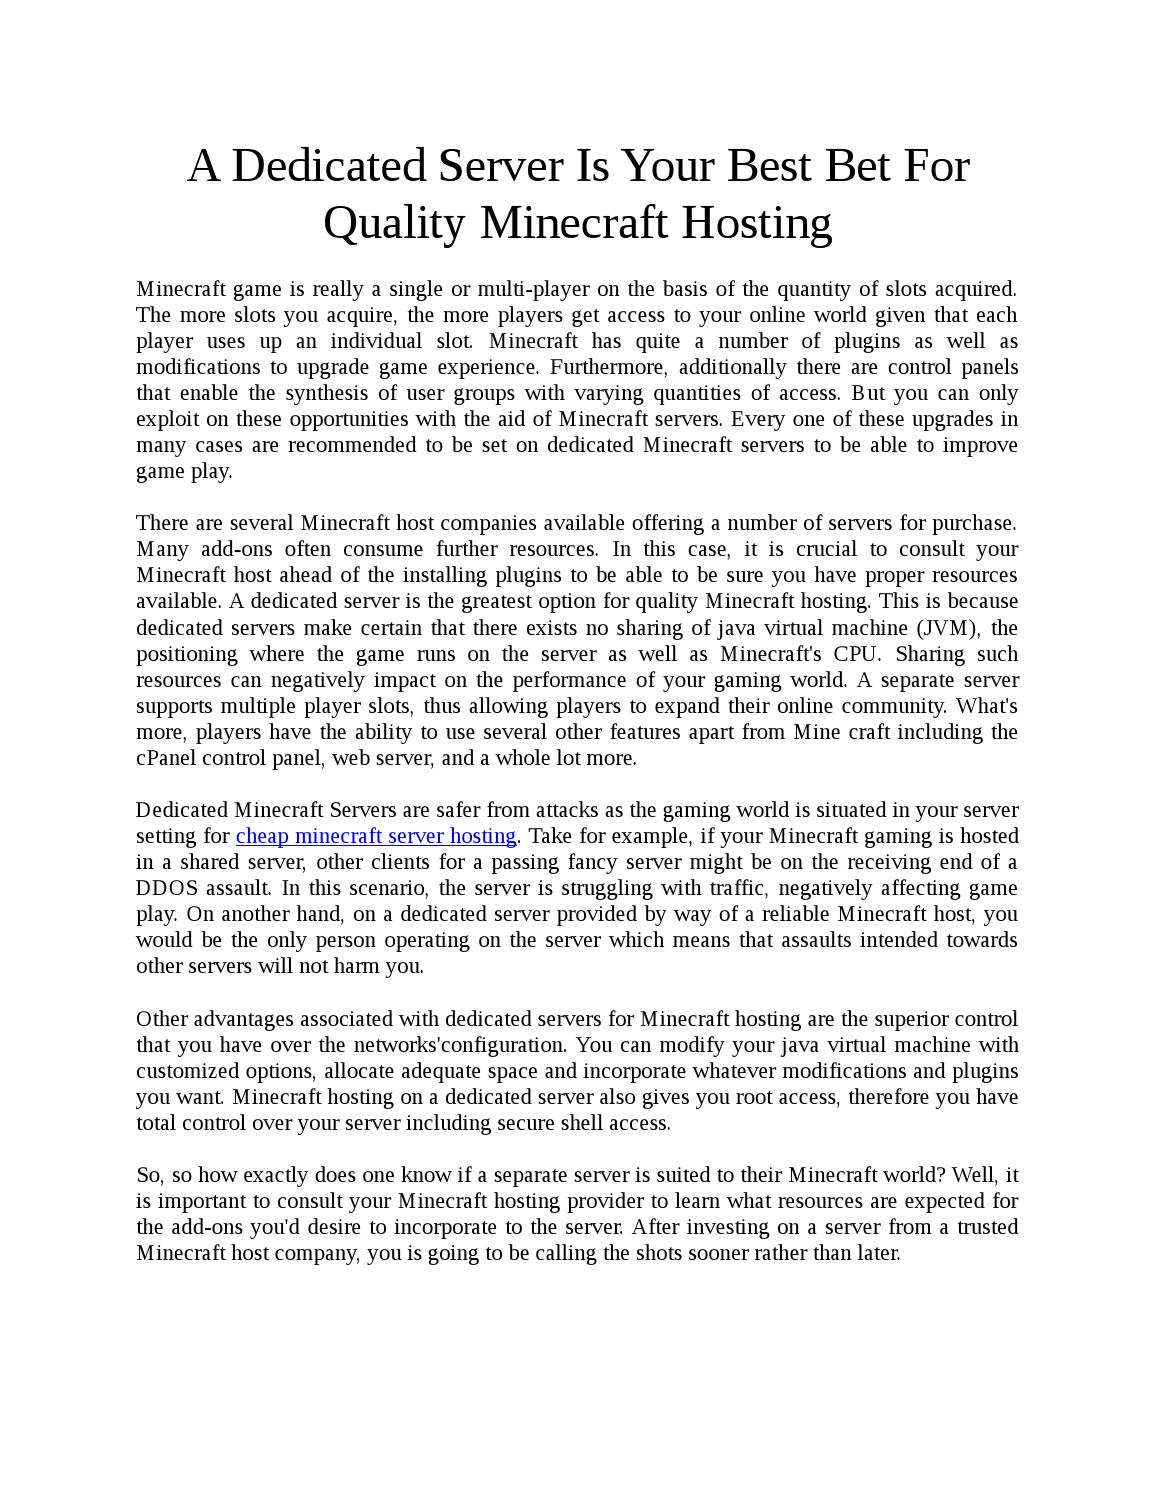 Cheap Minecraft Server Hosting By Cloudfrosthosting